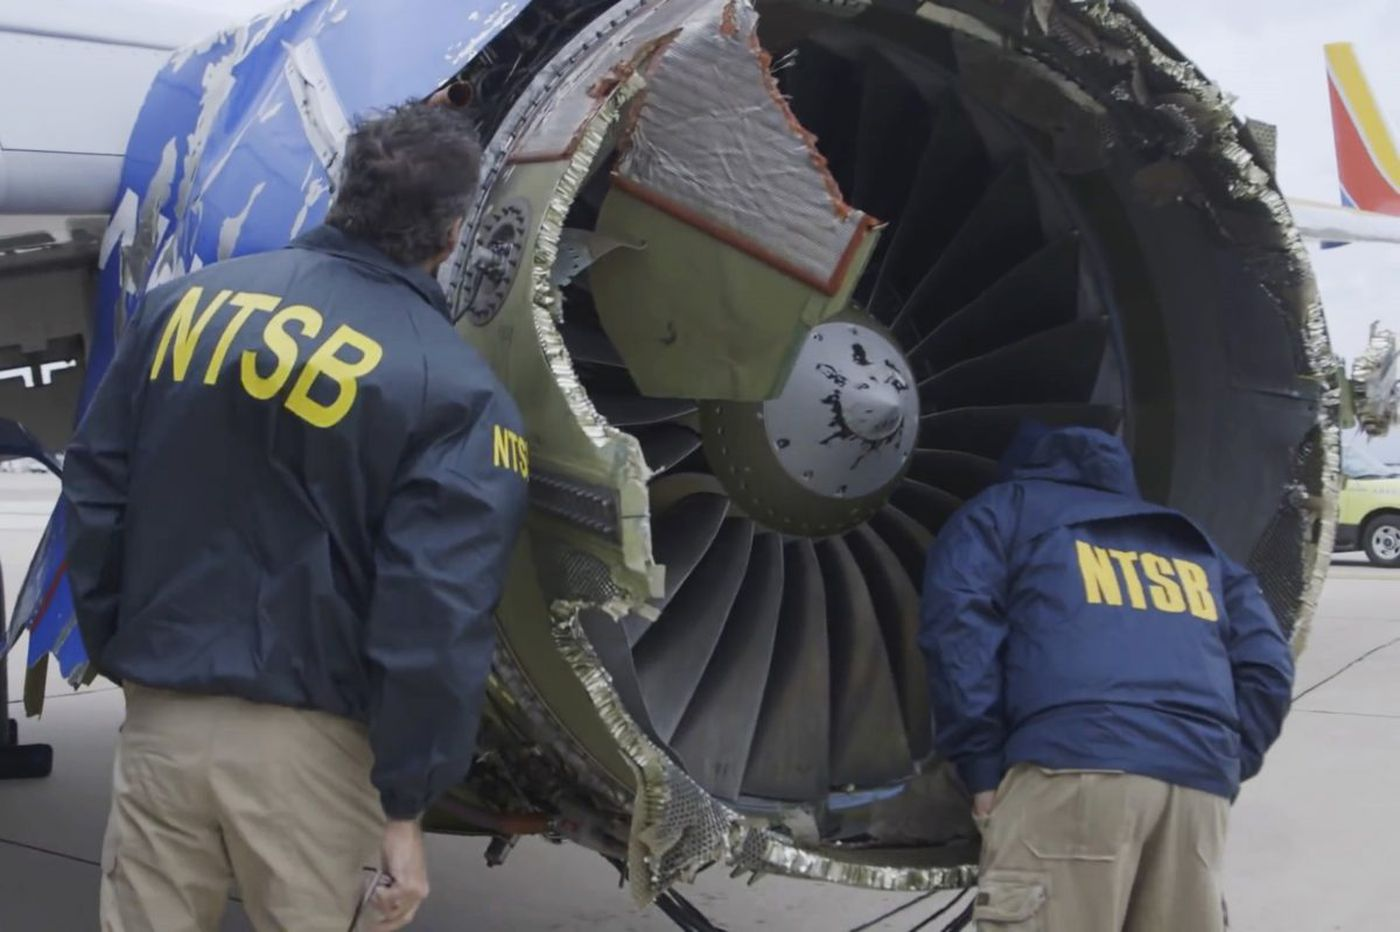 How experts found pieces of the Southwest jet from 65 miles away